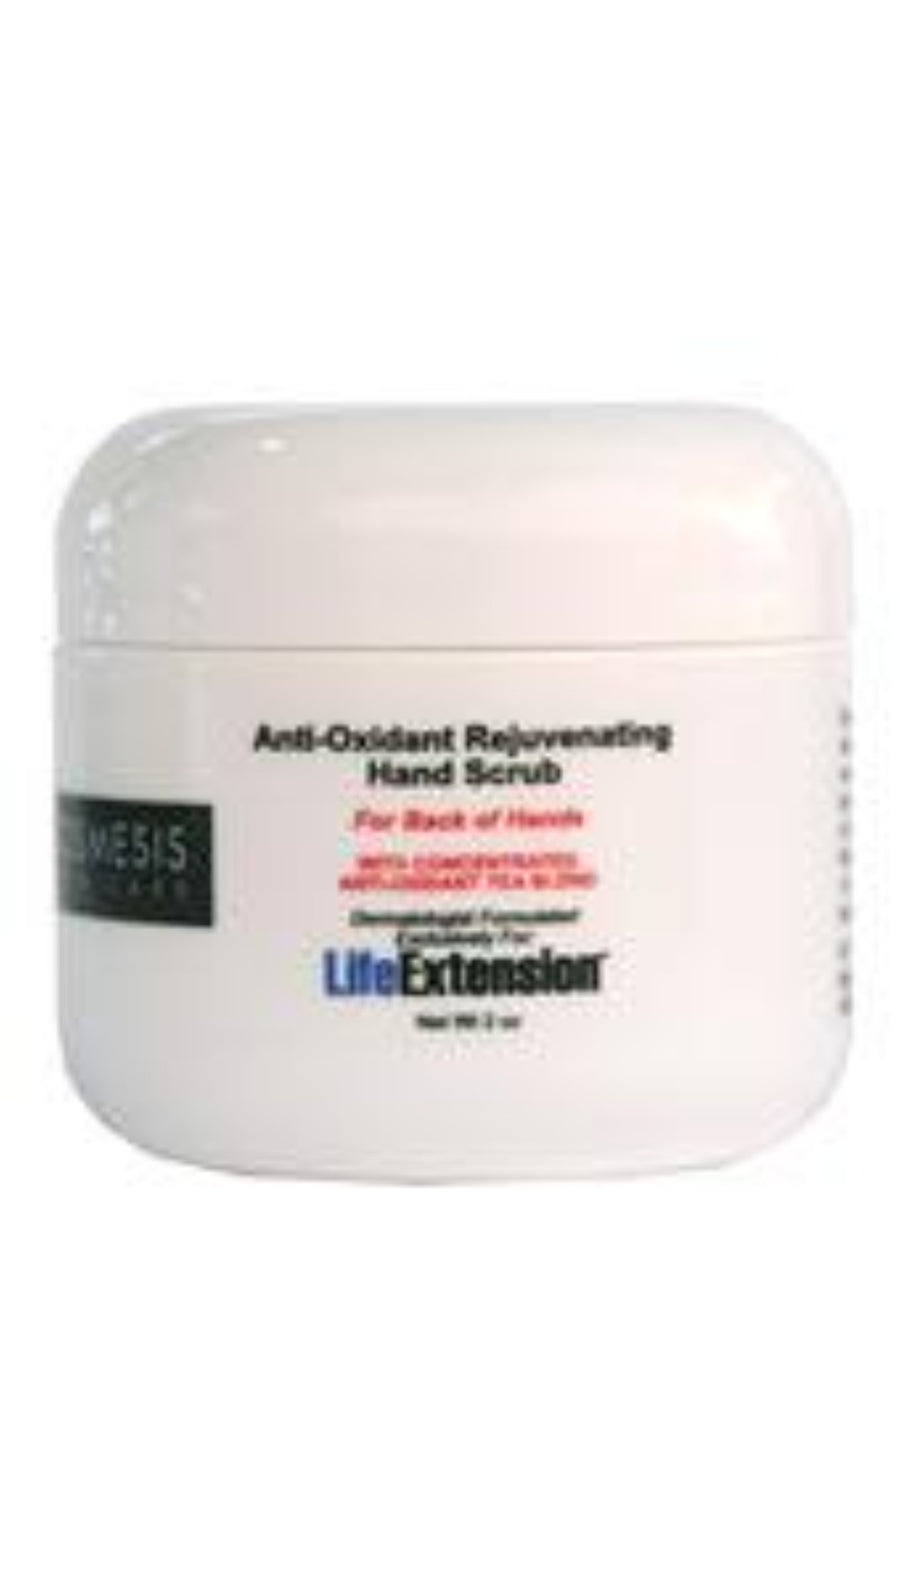 Neck Rejuvenating Anti-Oxidant Cream - 2 oz by Life Extension CLEAN & CLEAR Continuous Control Acne Cleanser 5 oz (Pack of 3)